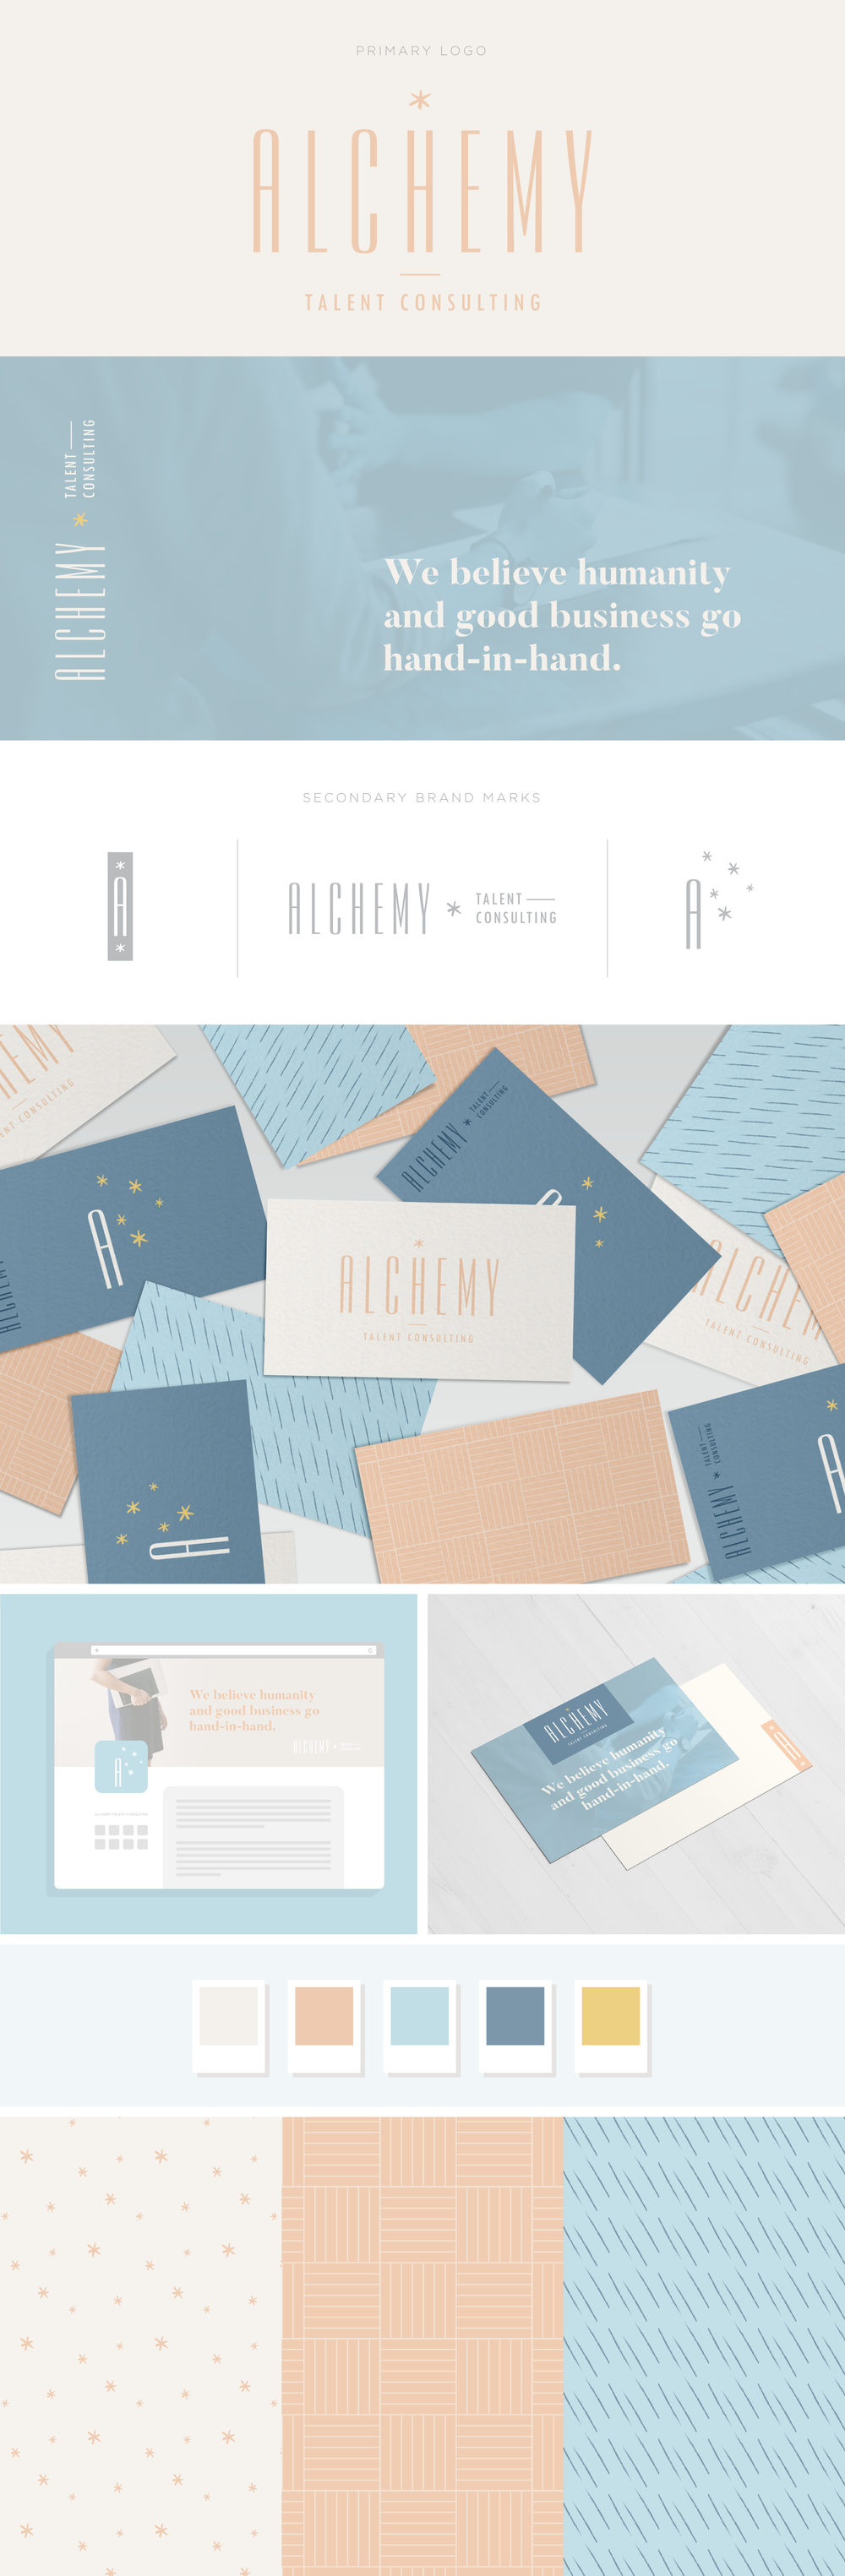 Alchemy Talent Consulting brand design by Pace Creative Design Studio